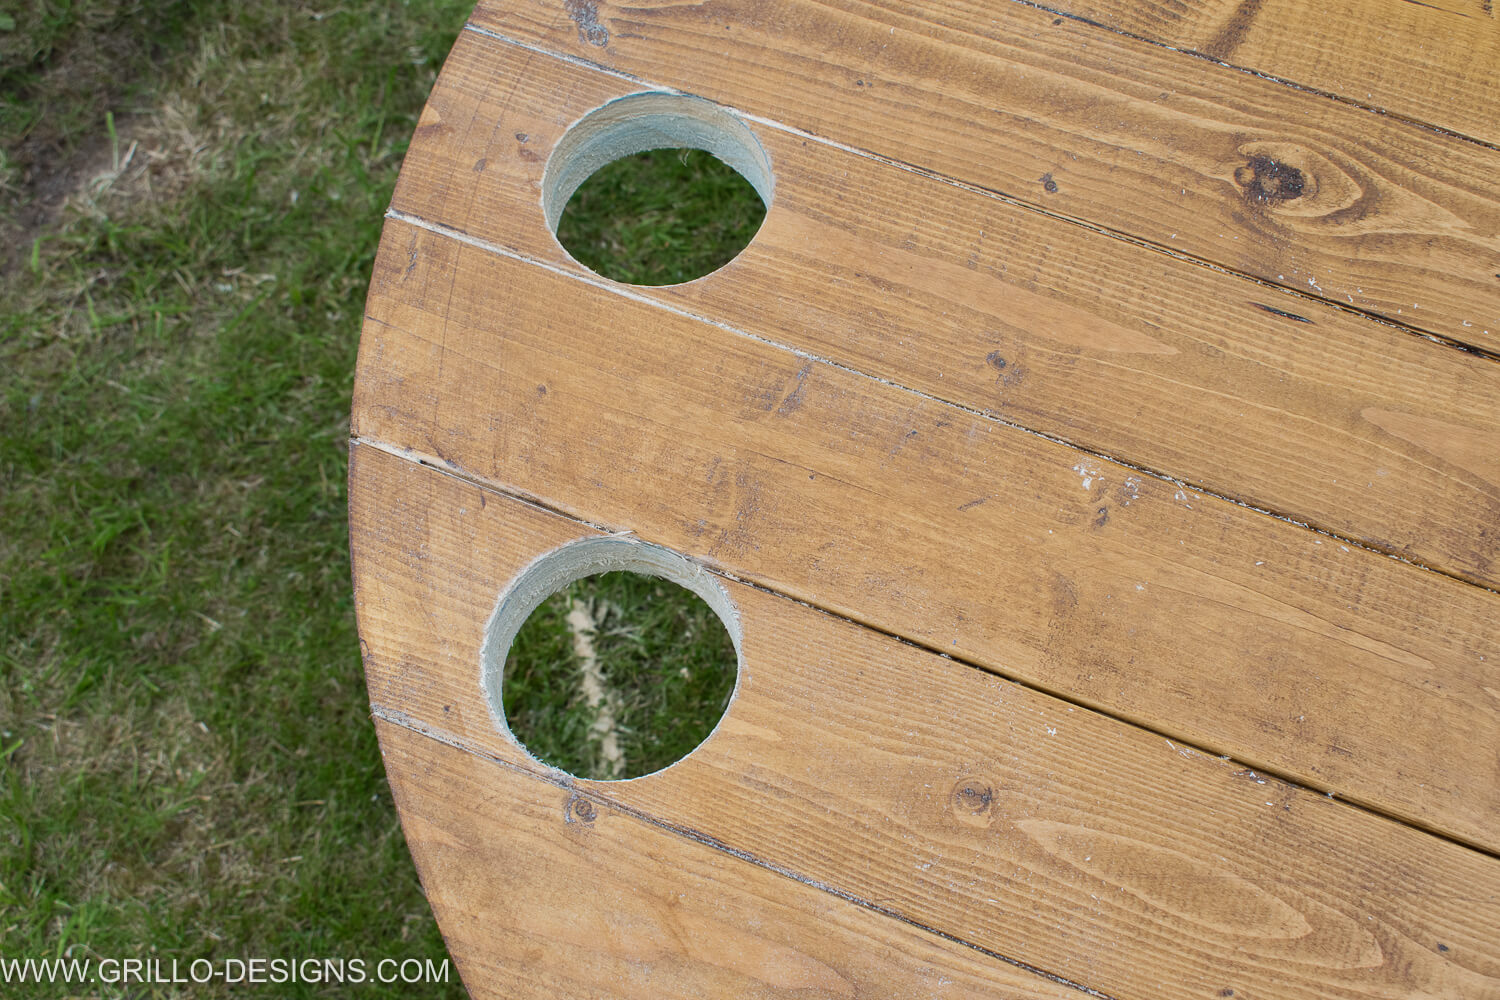 Insert cup holders into your diy tree trunk table / grillo designs